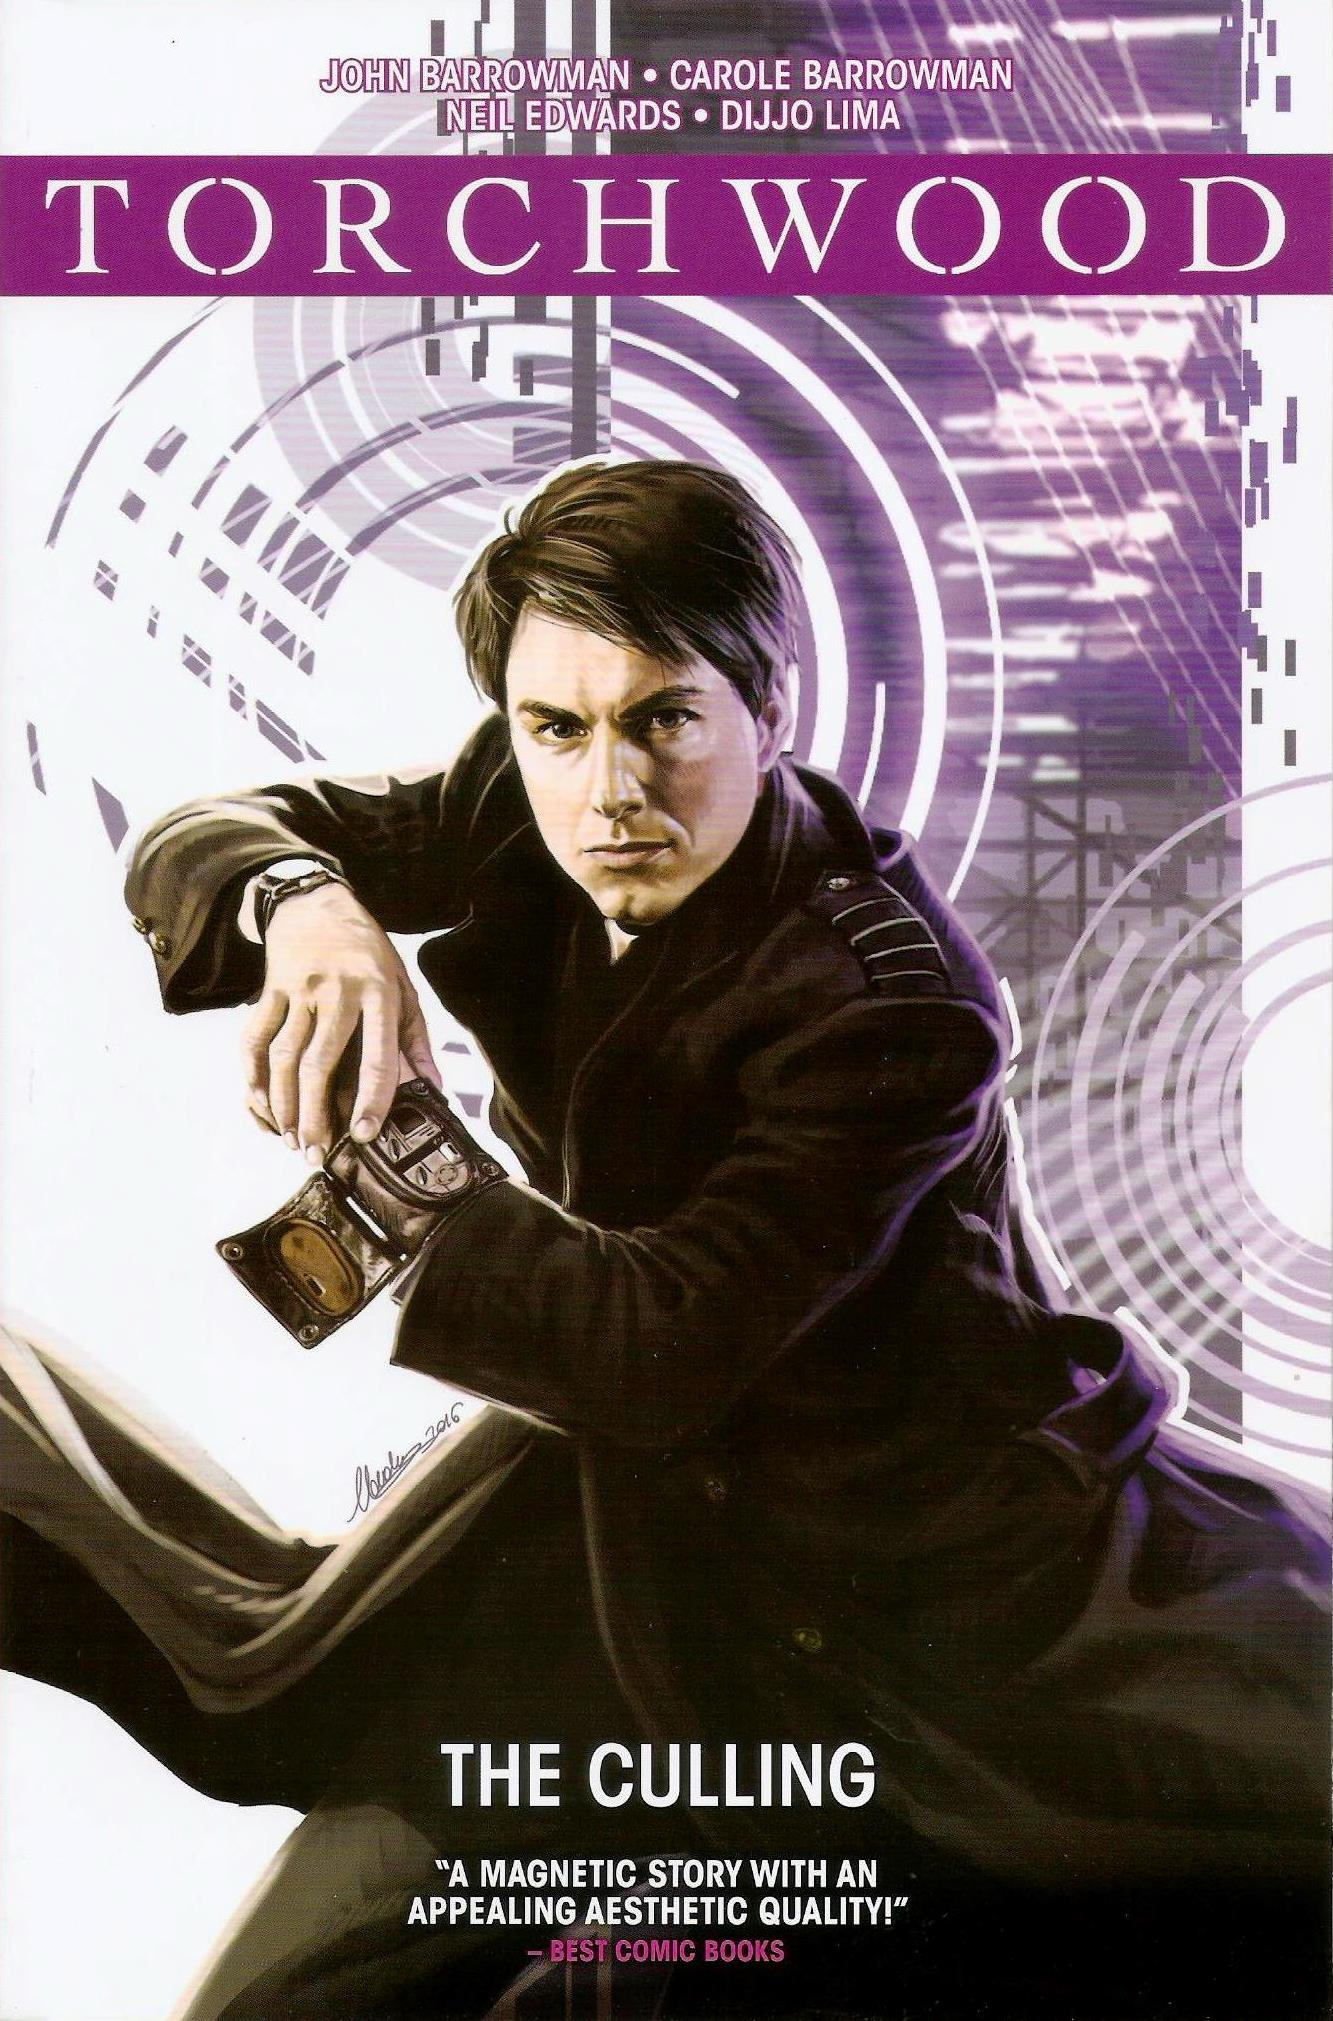 Torchwood volume 3 the culling